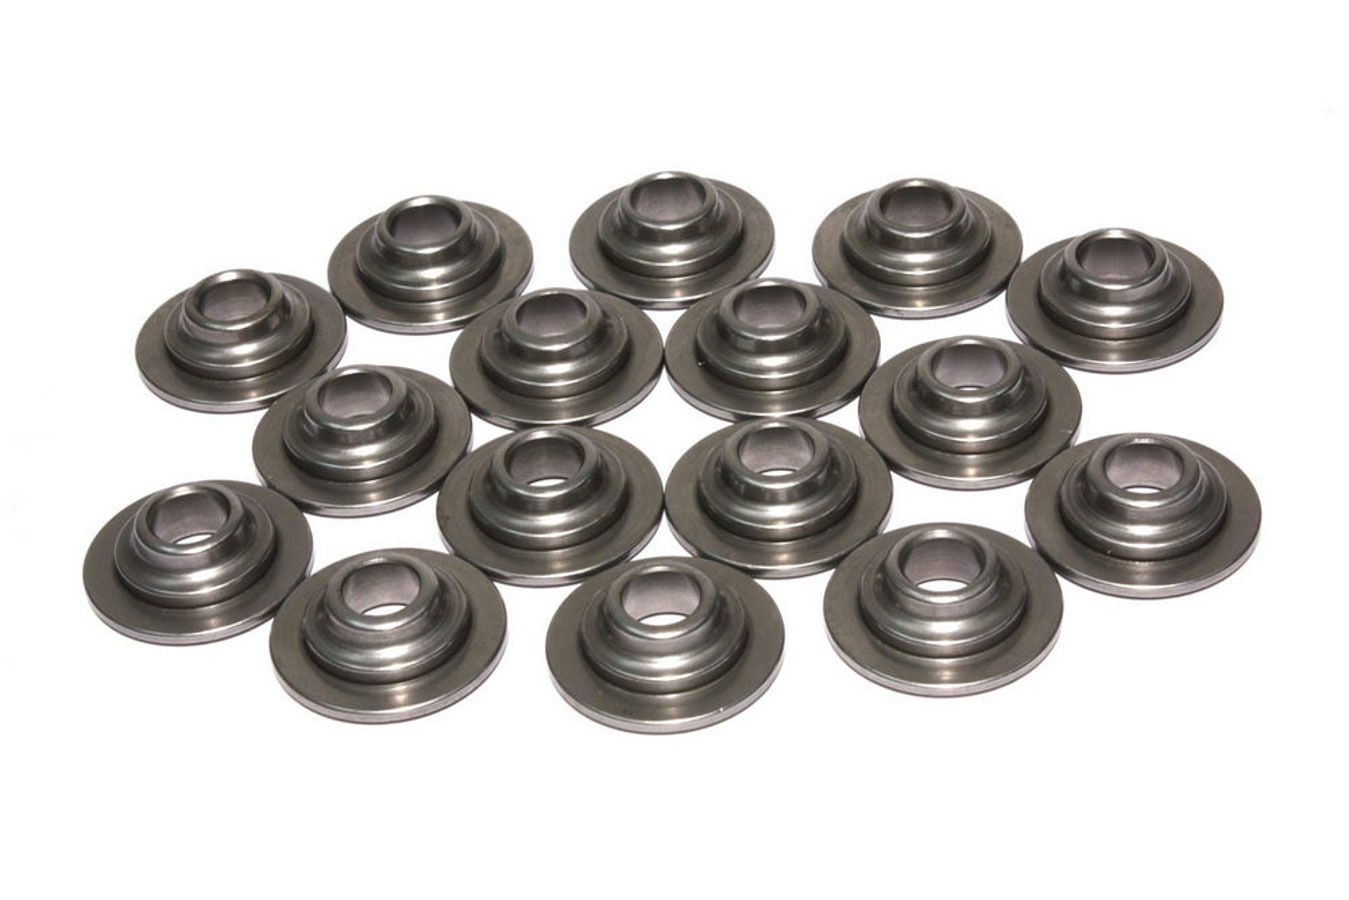 Comp Cams 1756-16 Valve Spring Retainer, 10 Degree, 0.725 in / 0.466 in OD Steps, 1.185 in Dual Spring, Steel, Set of 16